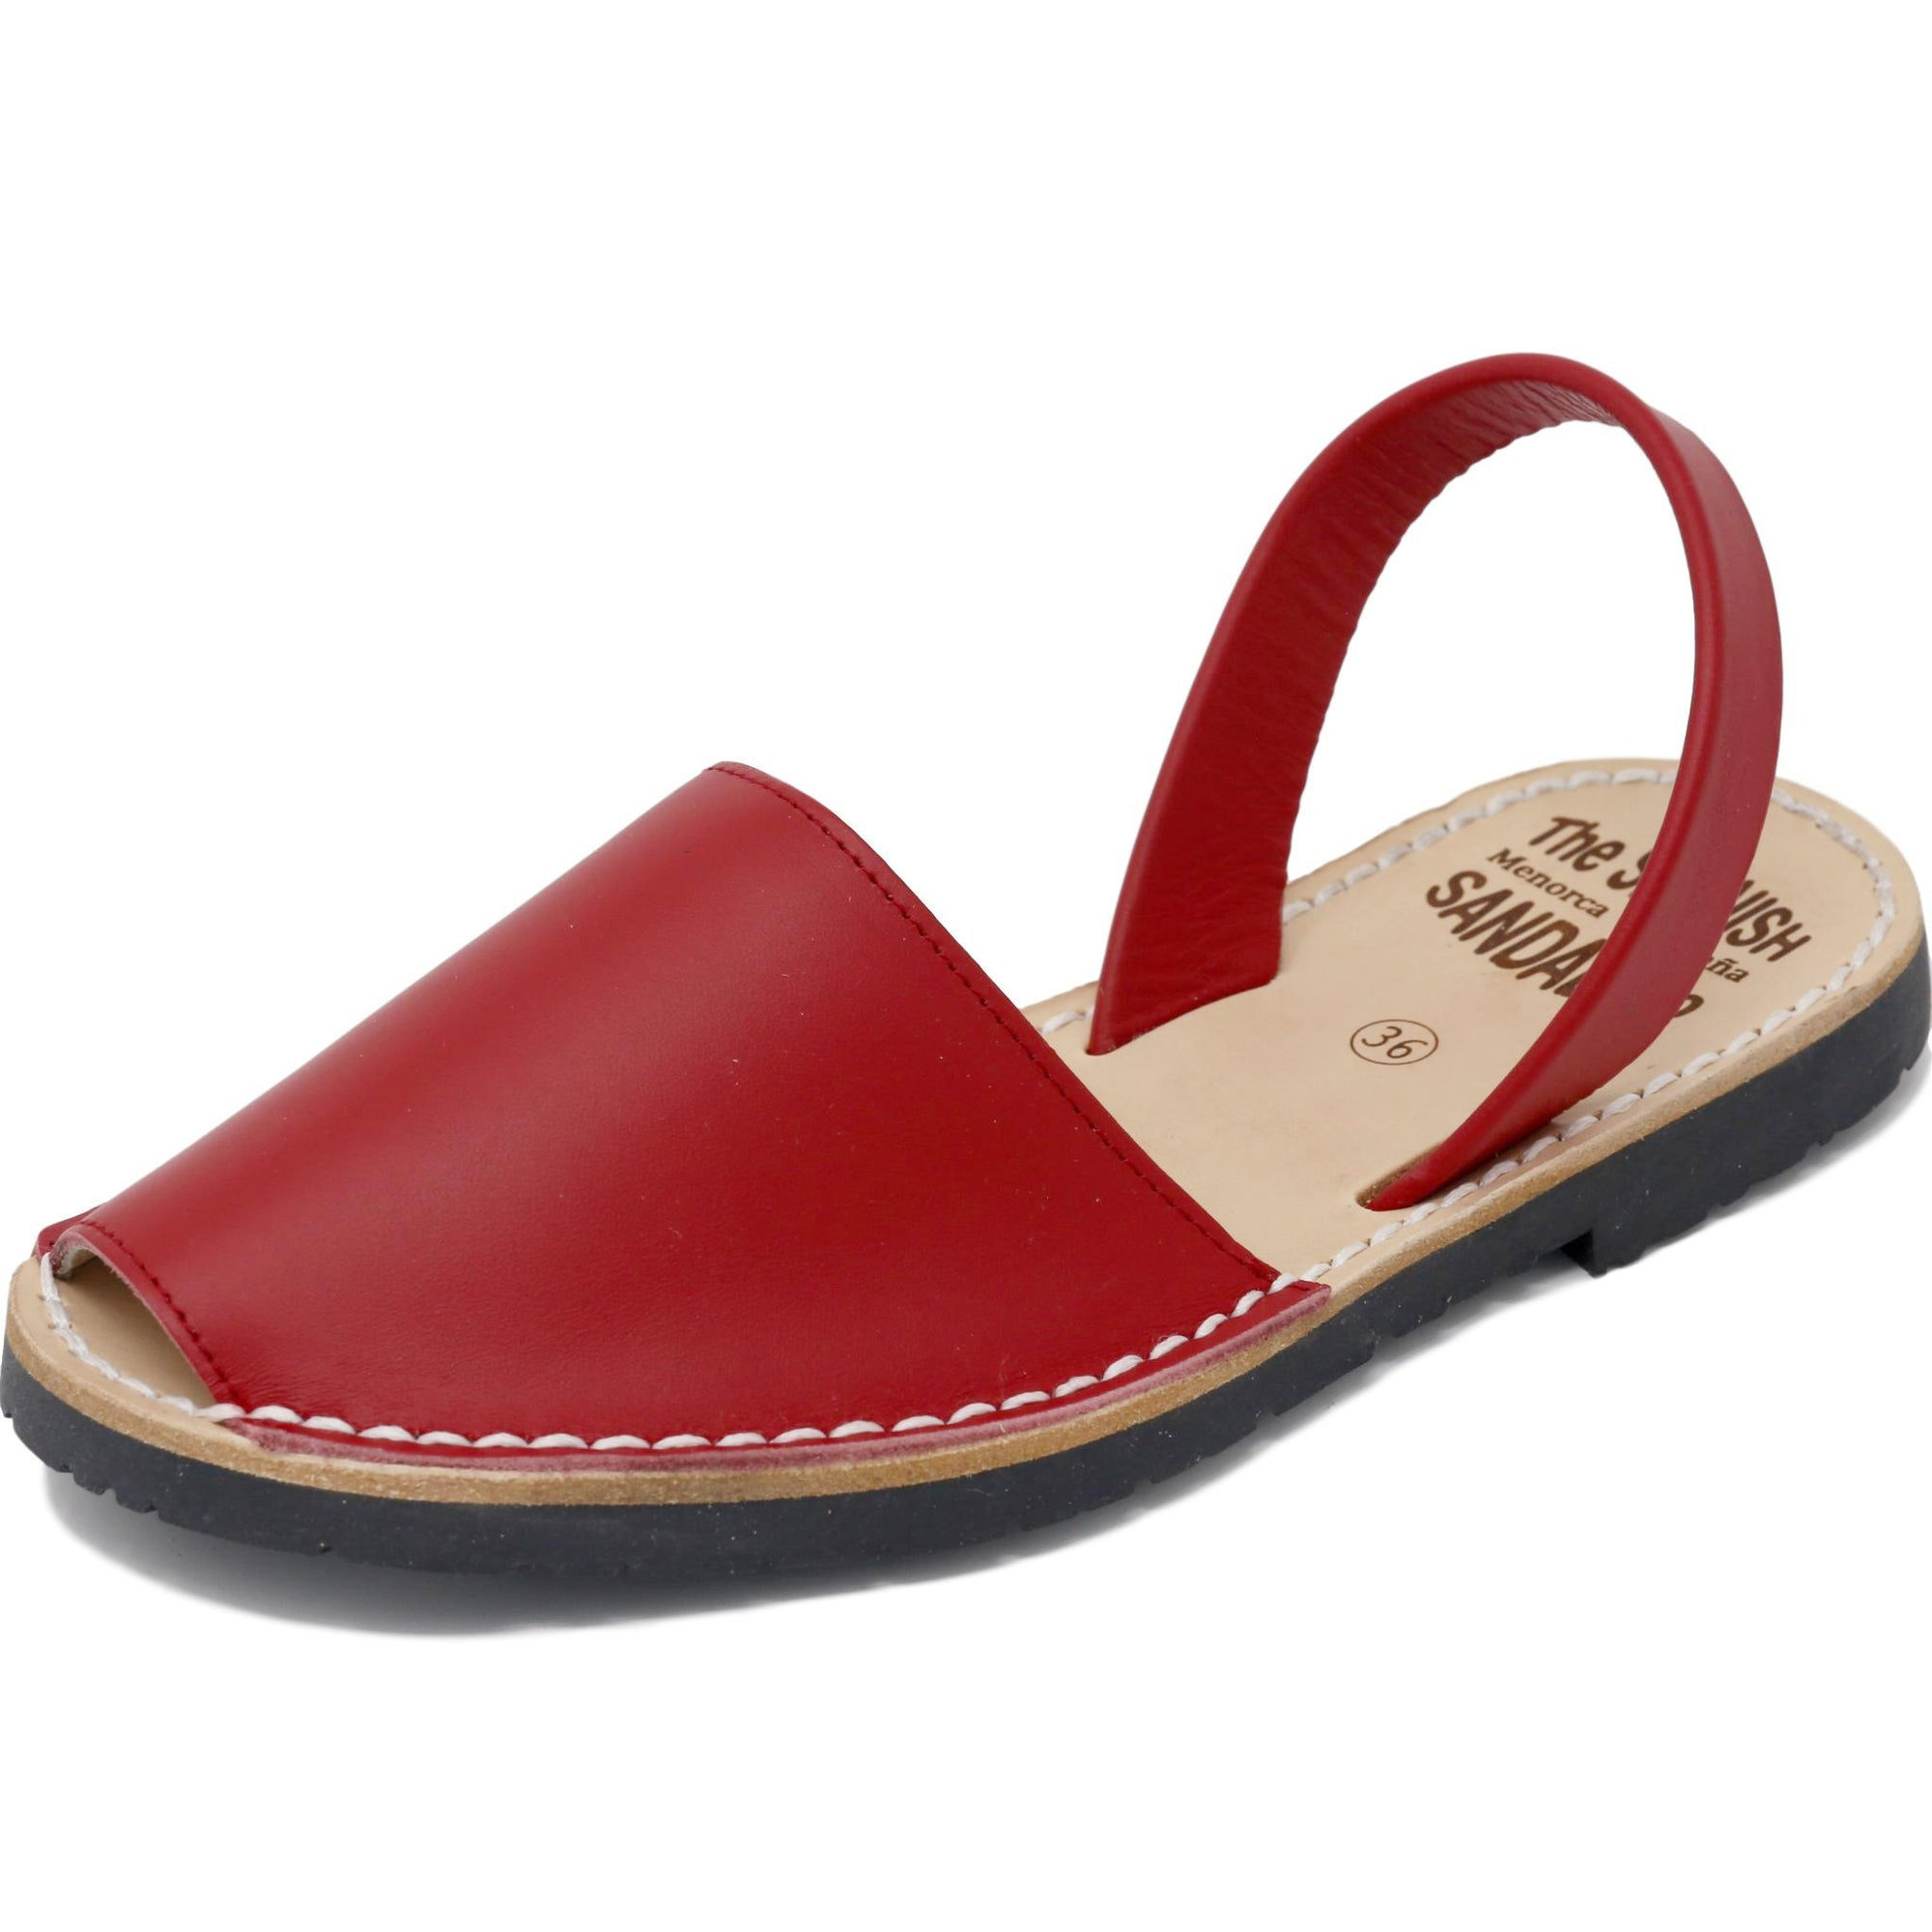 Classic red sandals  - diagonal view